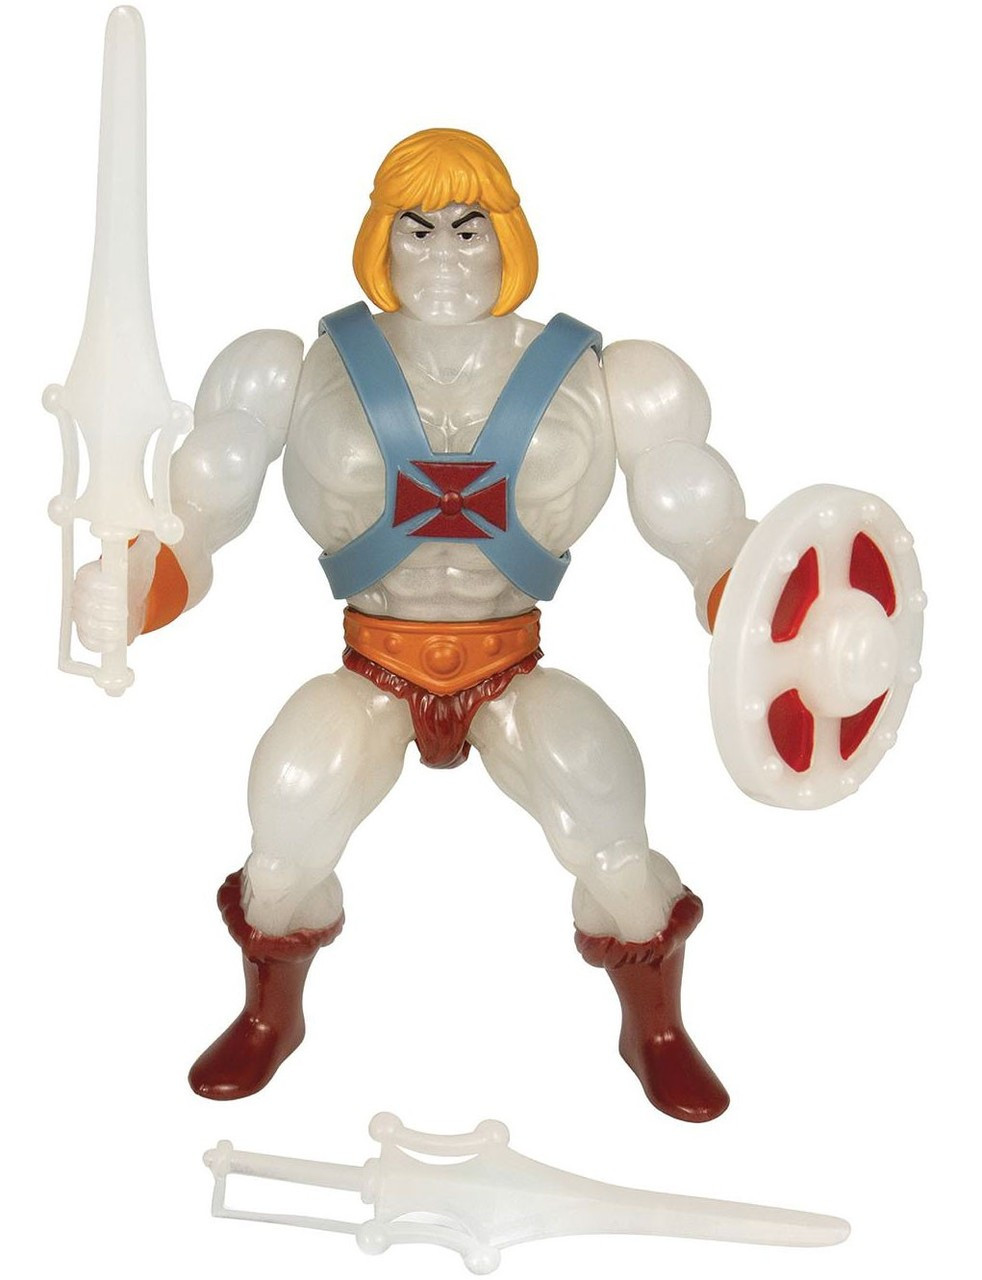 MASTERS OF THE UNIVERSE REACTION SET OF 6 WAVE 4 ACTION FIGURES IN STOCK